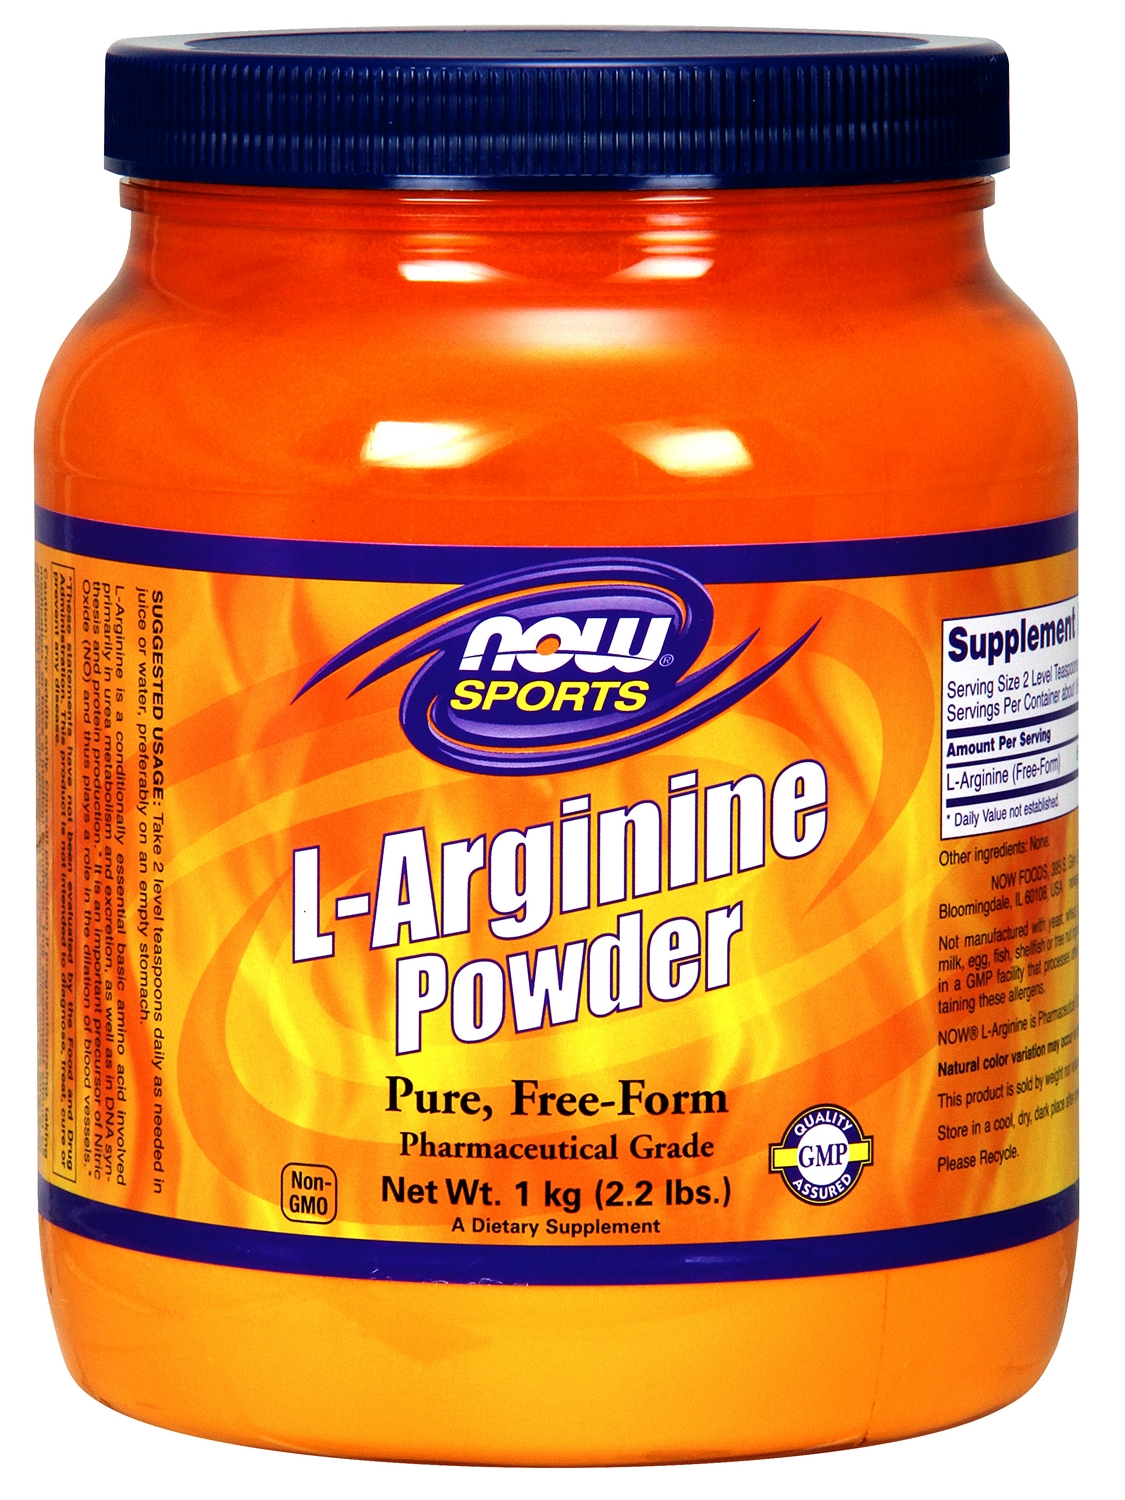 L-Arginine Powder 1 kg (2.2 lbs) by NOW Foods